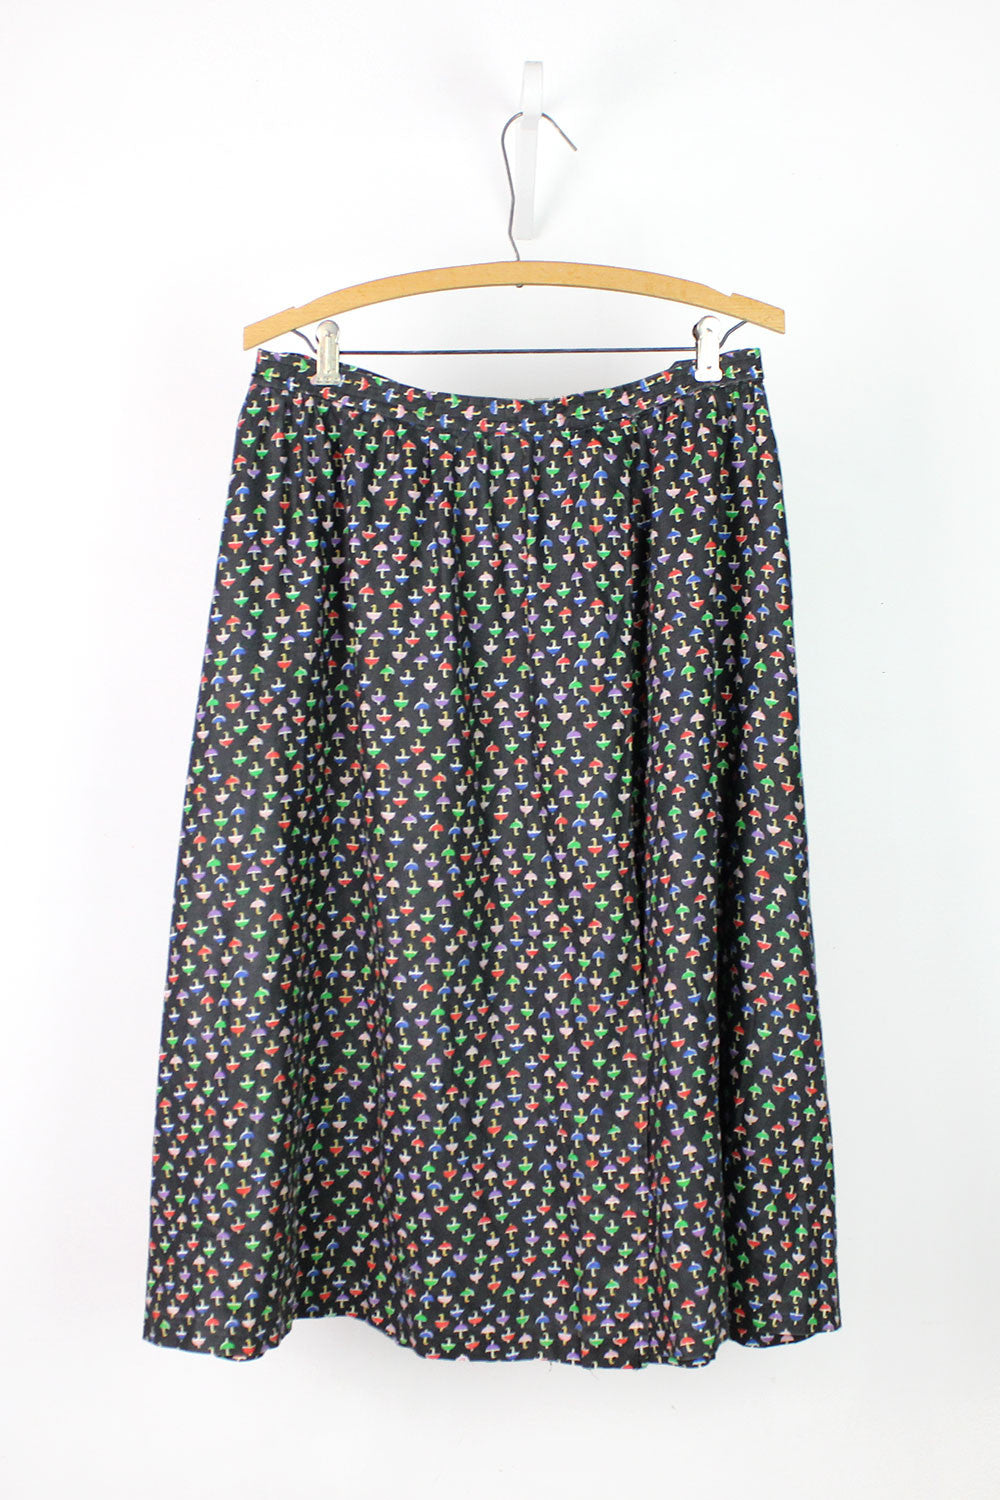 Umbrella Wrap Skirt